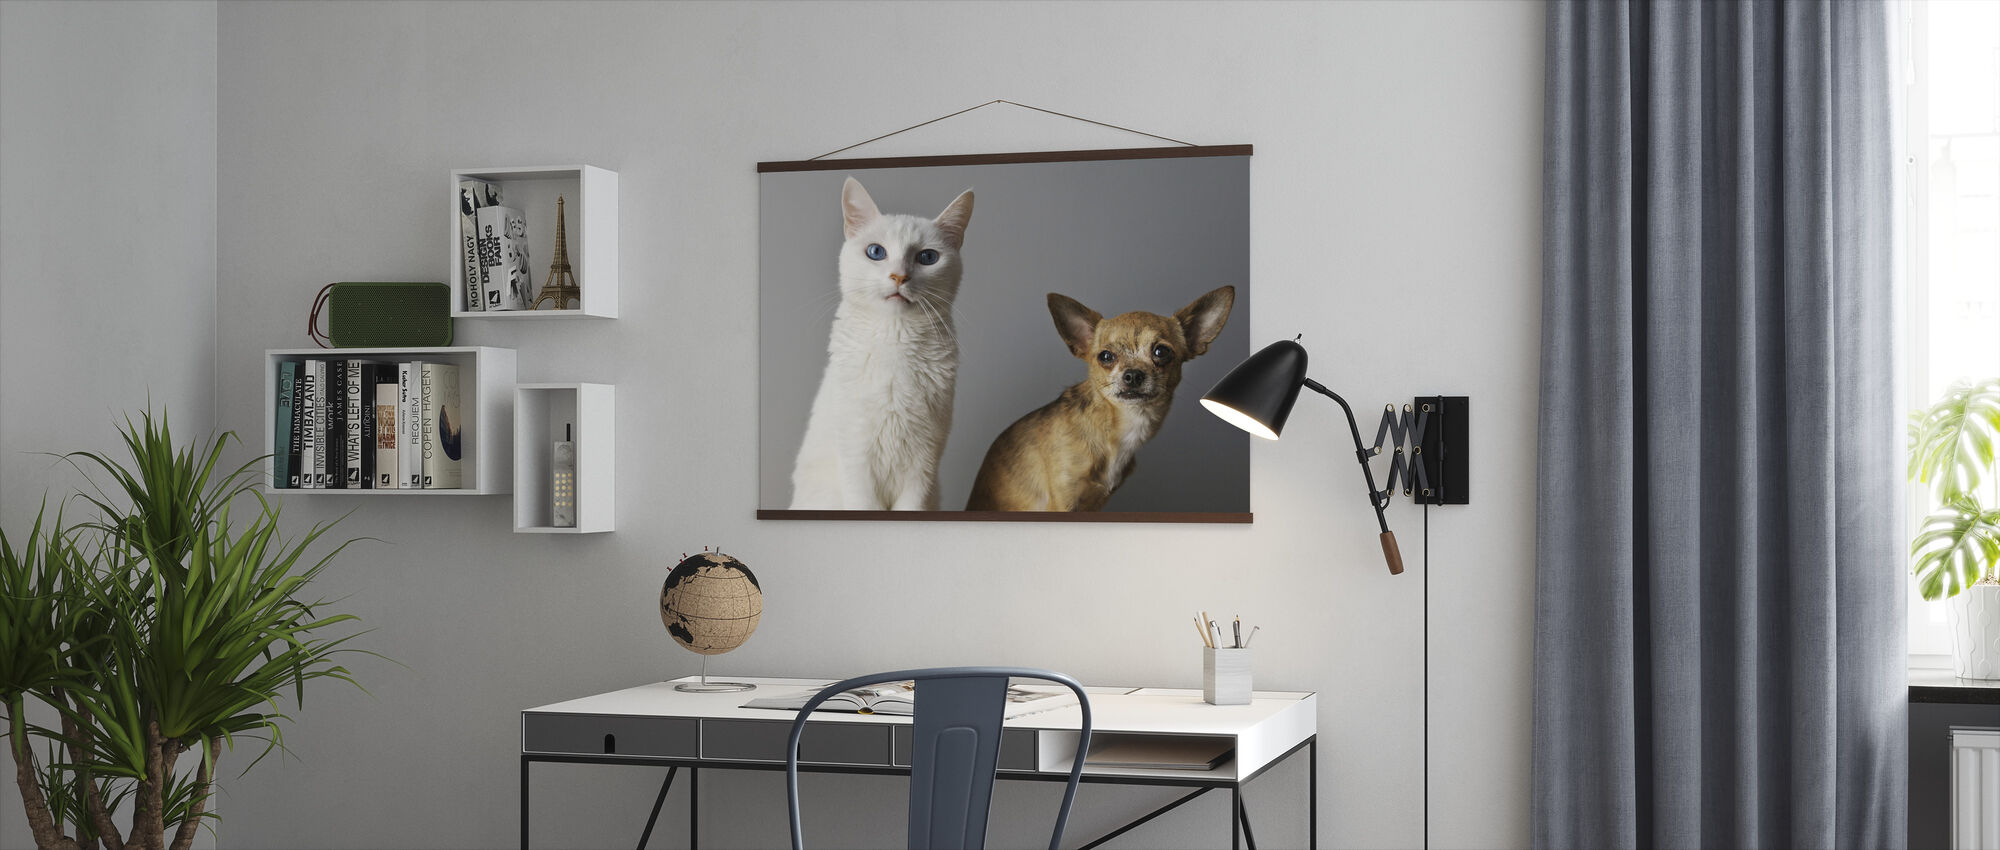 Duo of Cat and Dog - Poster - Office